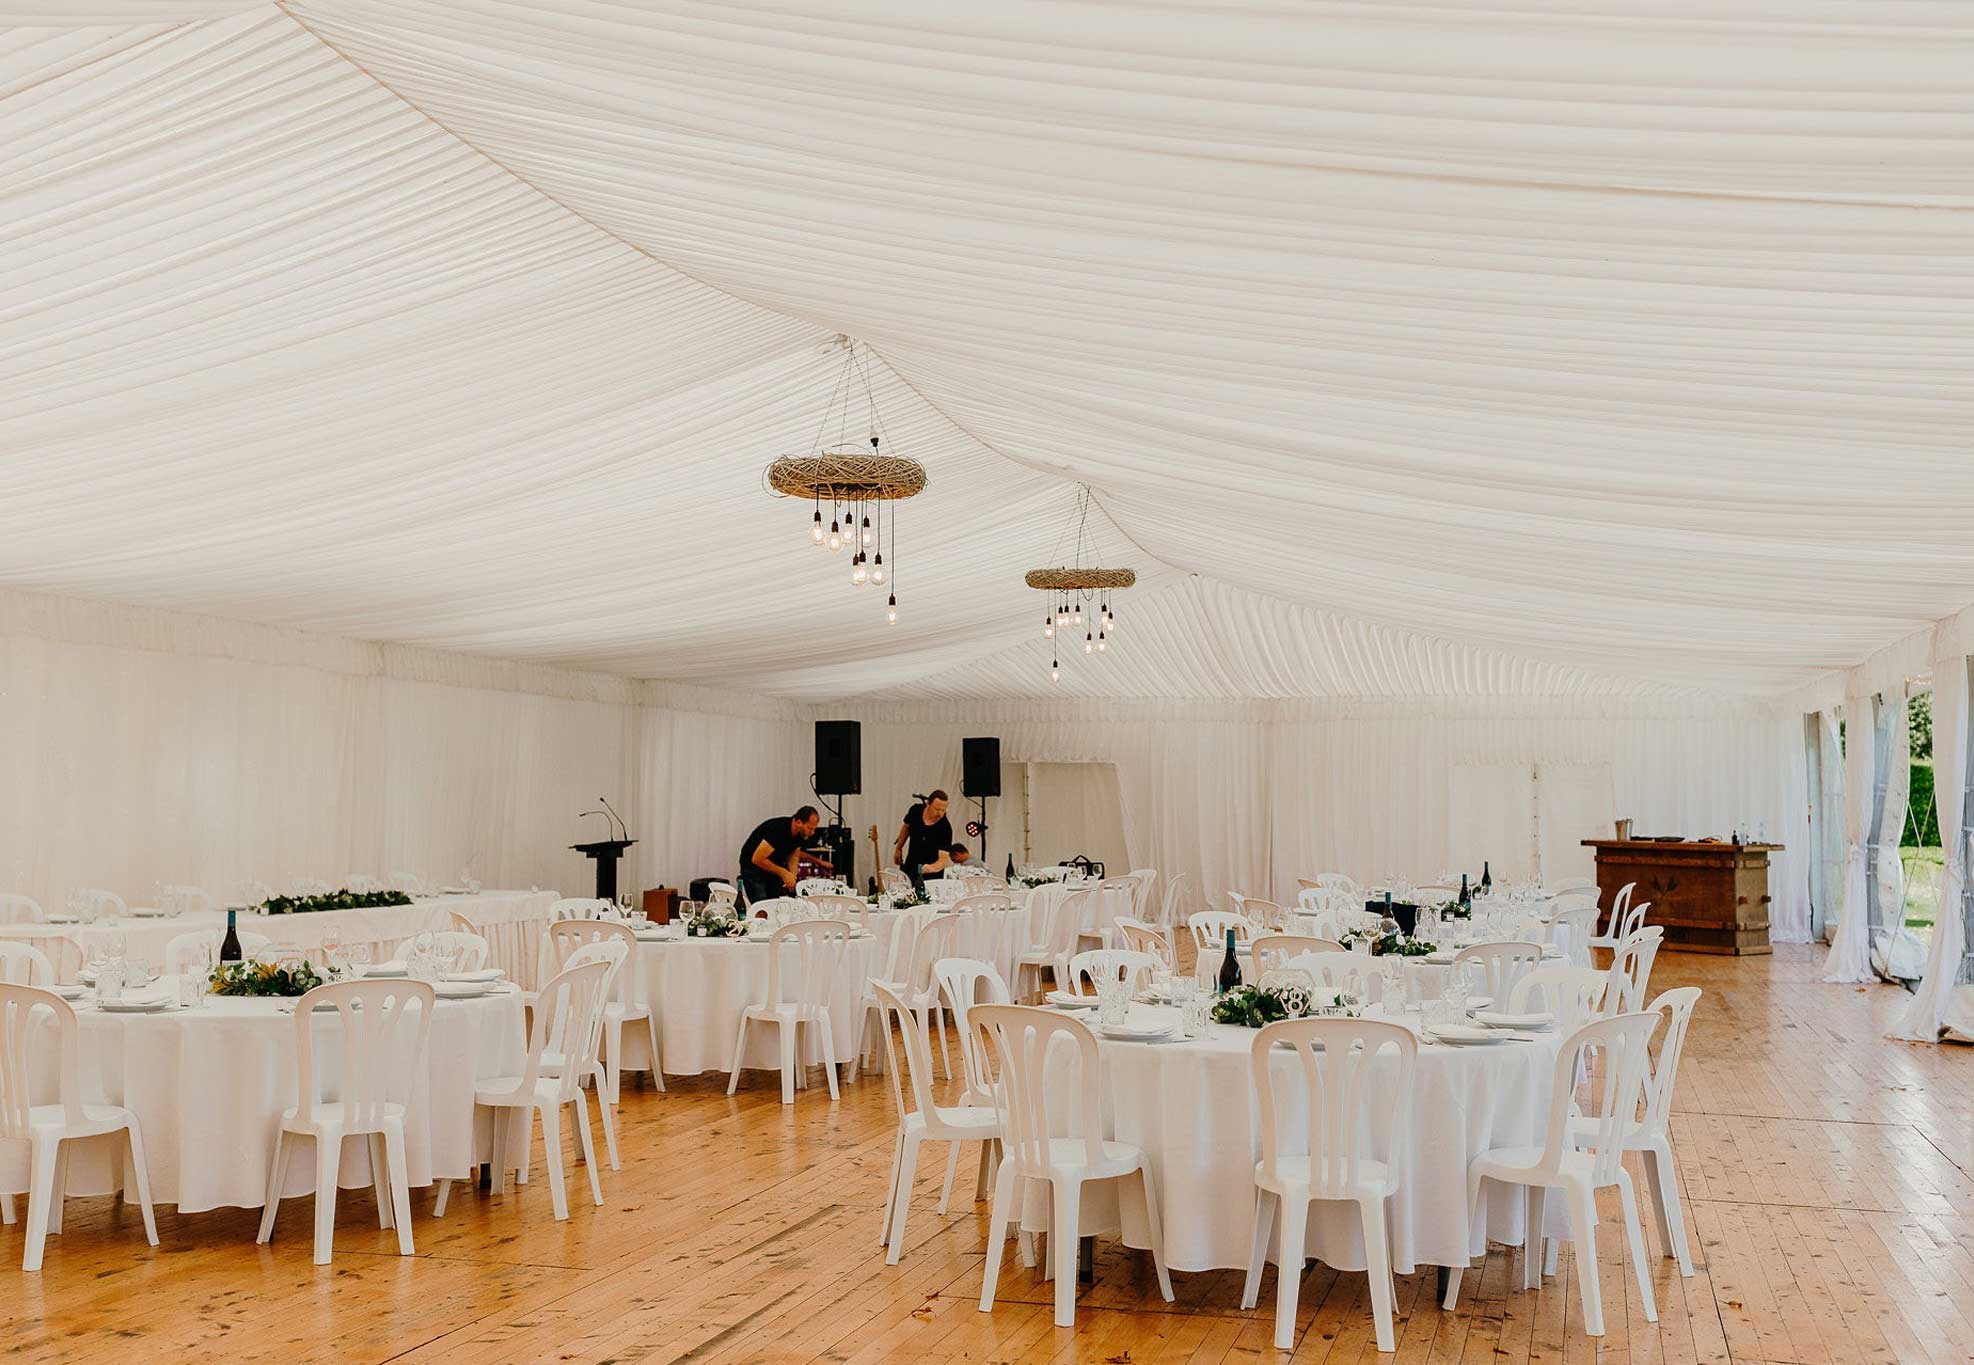 silk-estate-marquee-weddings-and-events-styling-and-hire-lightting-festoon-8